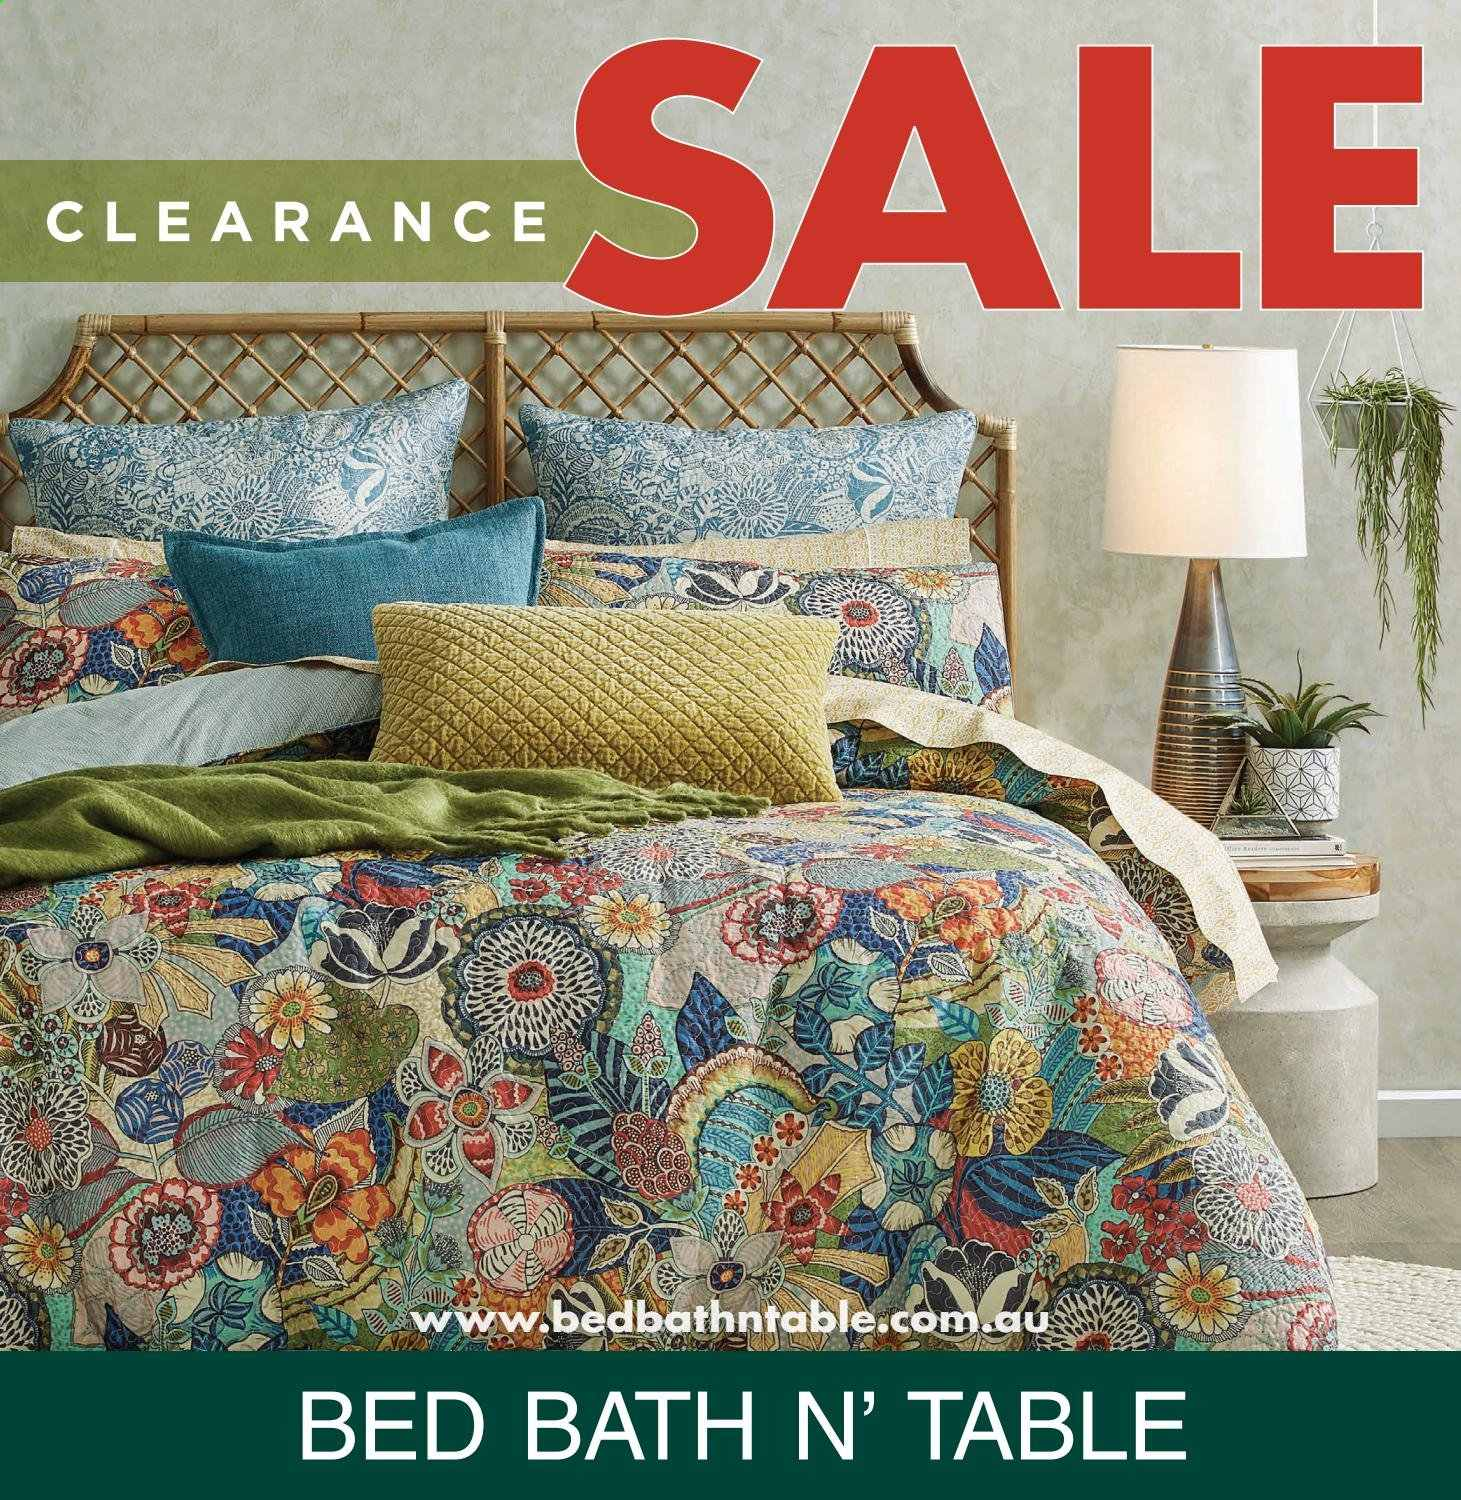 Amazing Bed Bath N Table Catalogue And Weekly Specials 23 5 2019 Home Interior And Landscaping Ponolsignezvosmurscom